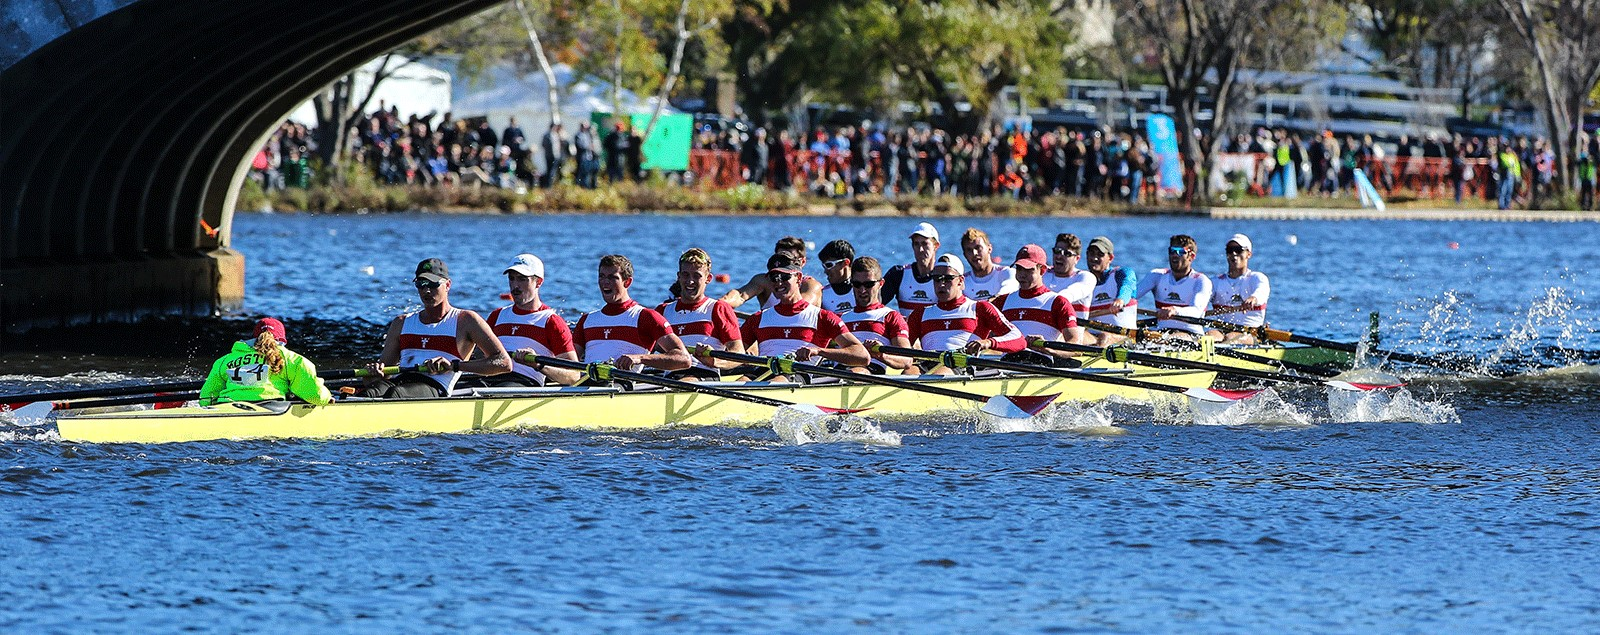 Head Of The Charles Regatta Begins Preparations for This Year's Race